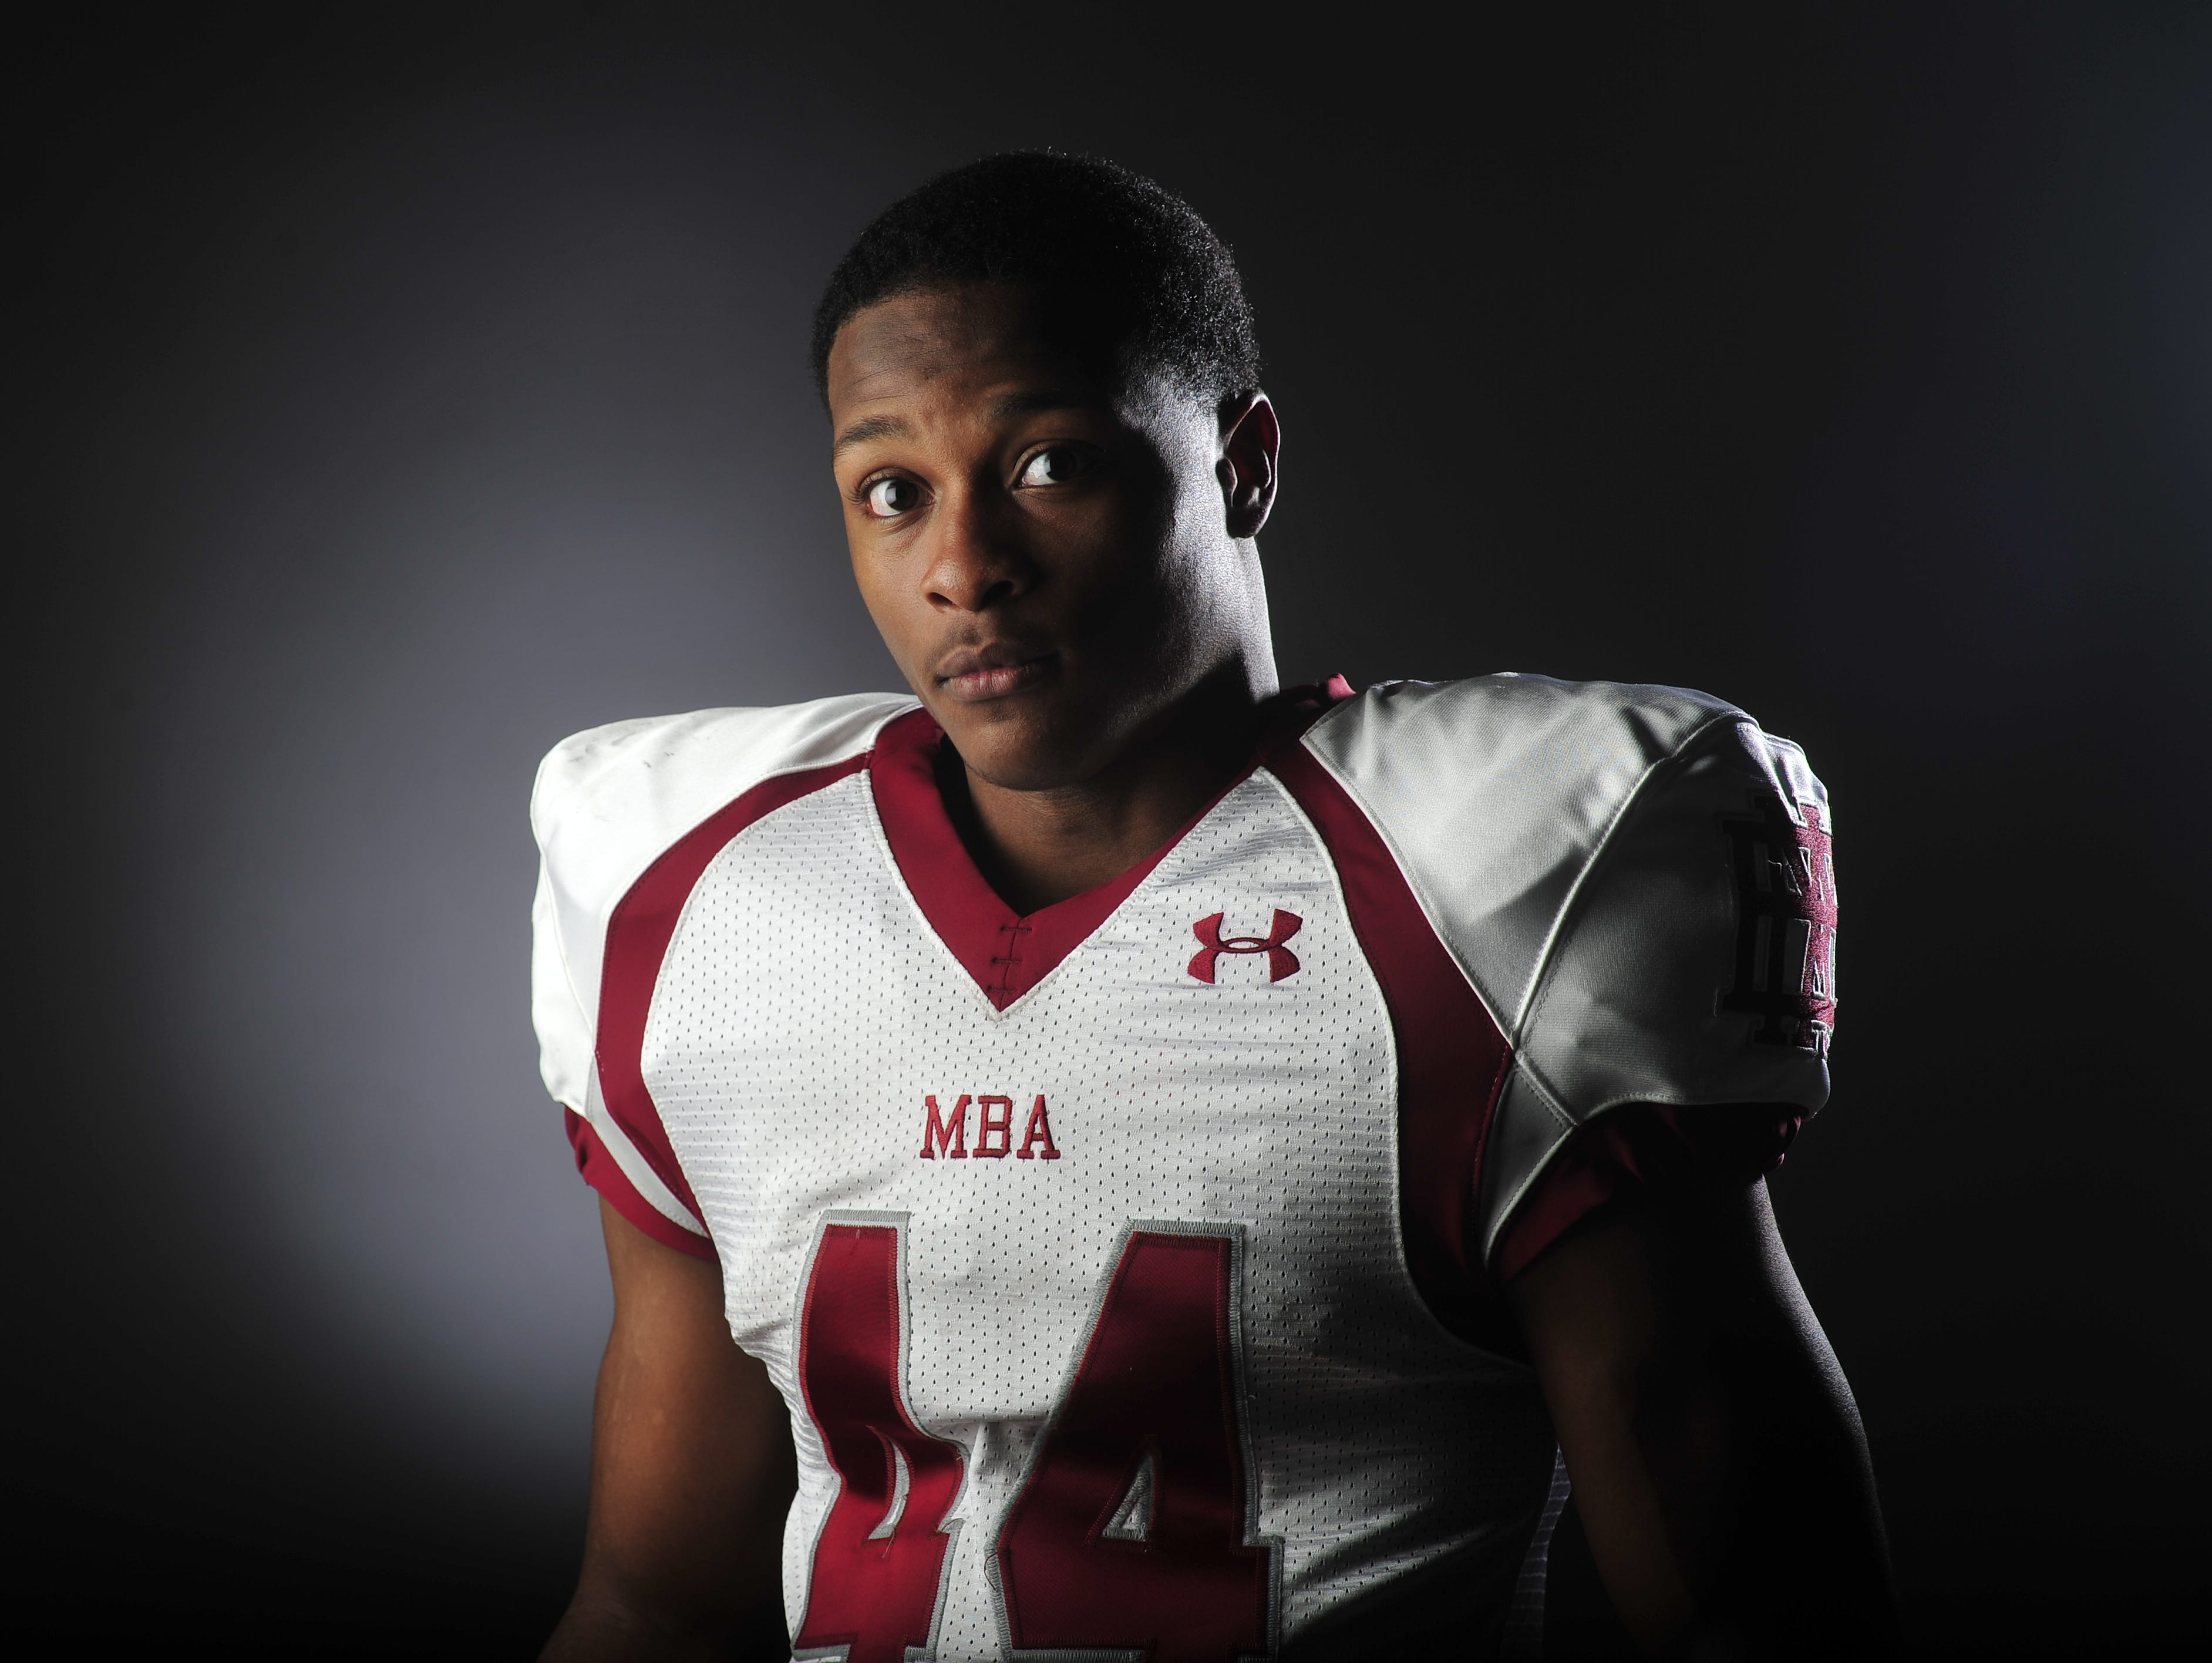 MBA running back Ty Chandler is No. 2 on this year's Dandy Dozen.